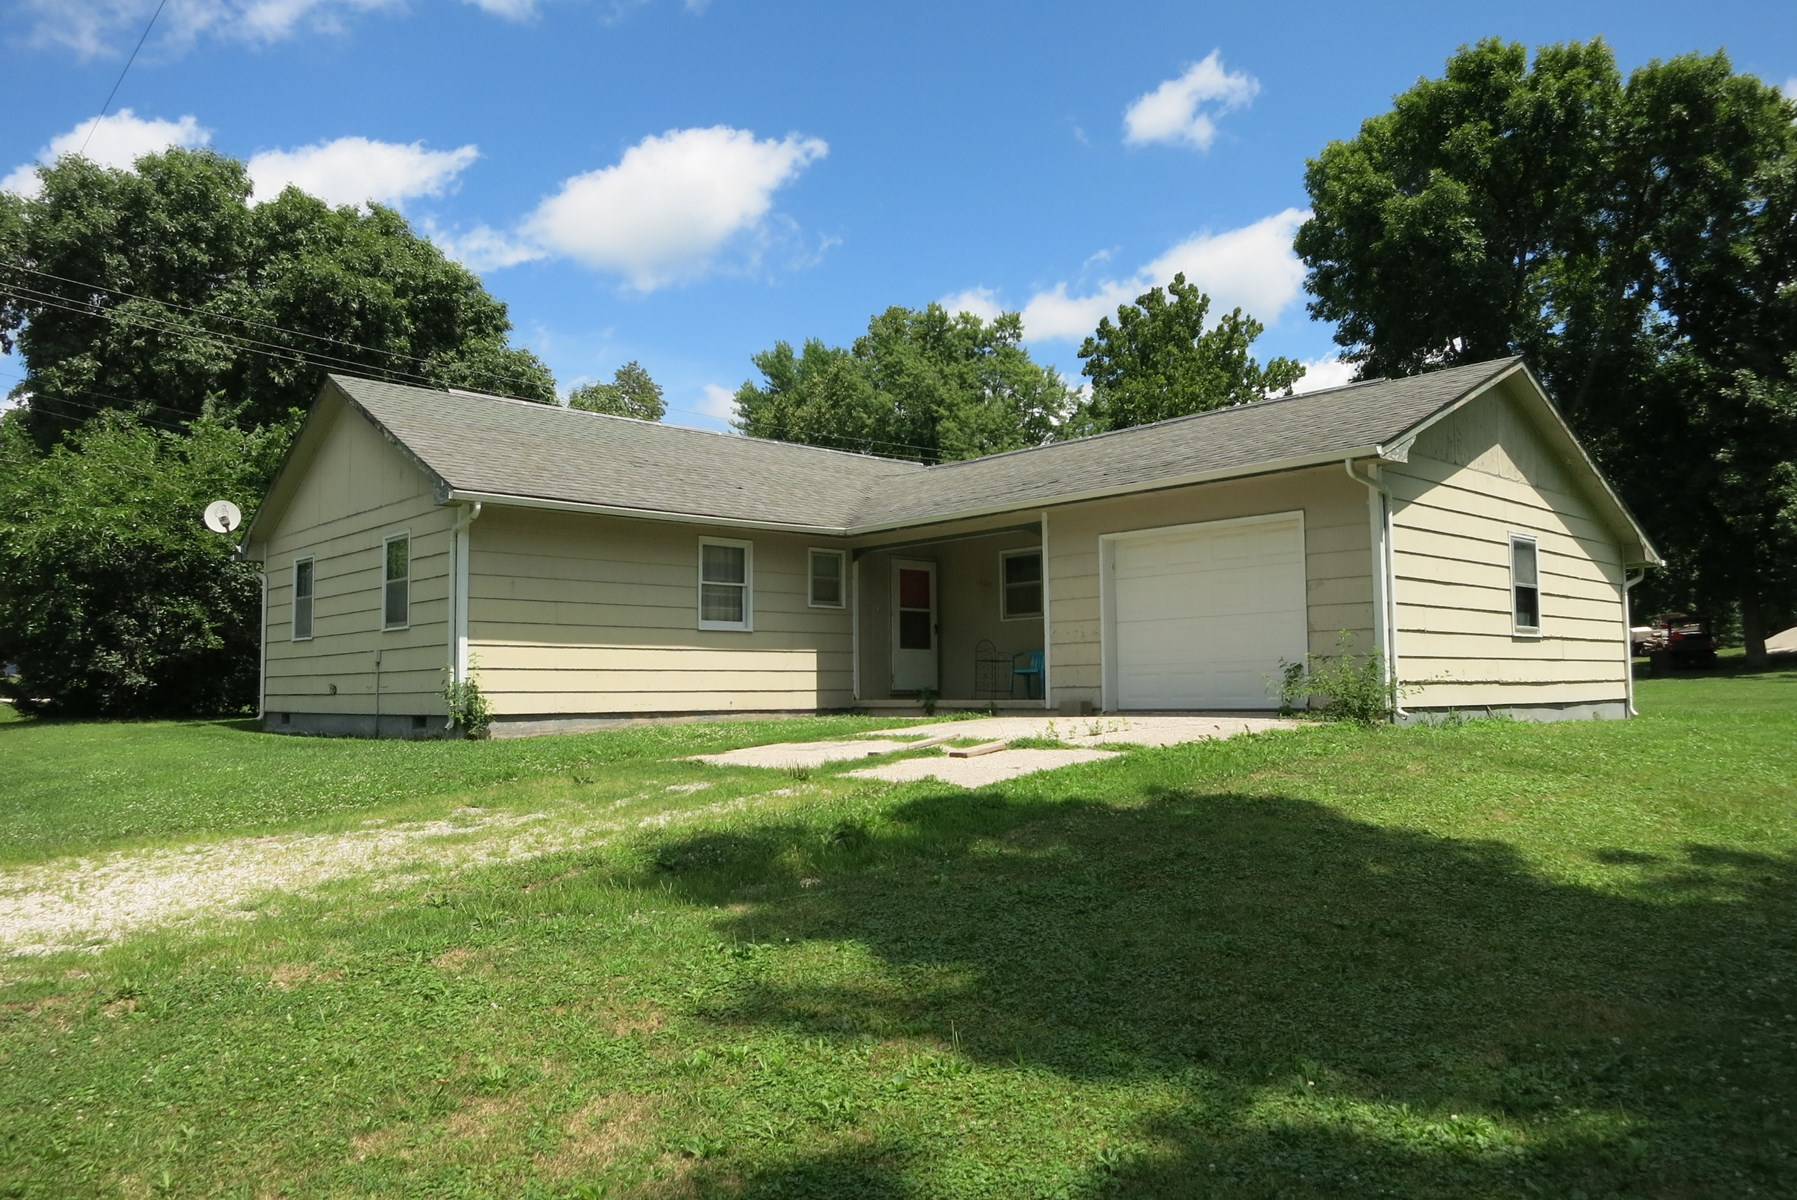 Ranch Home For Sale in Small Community